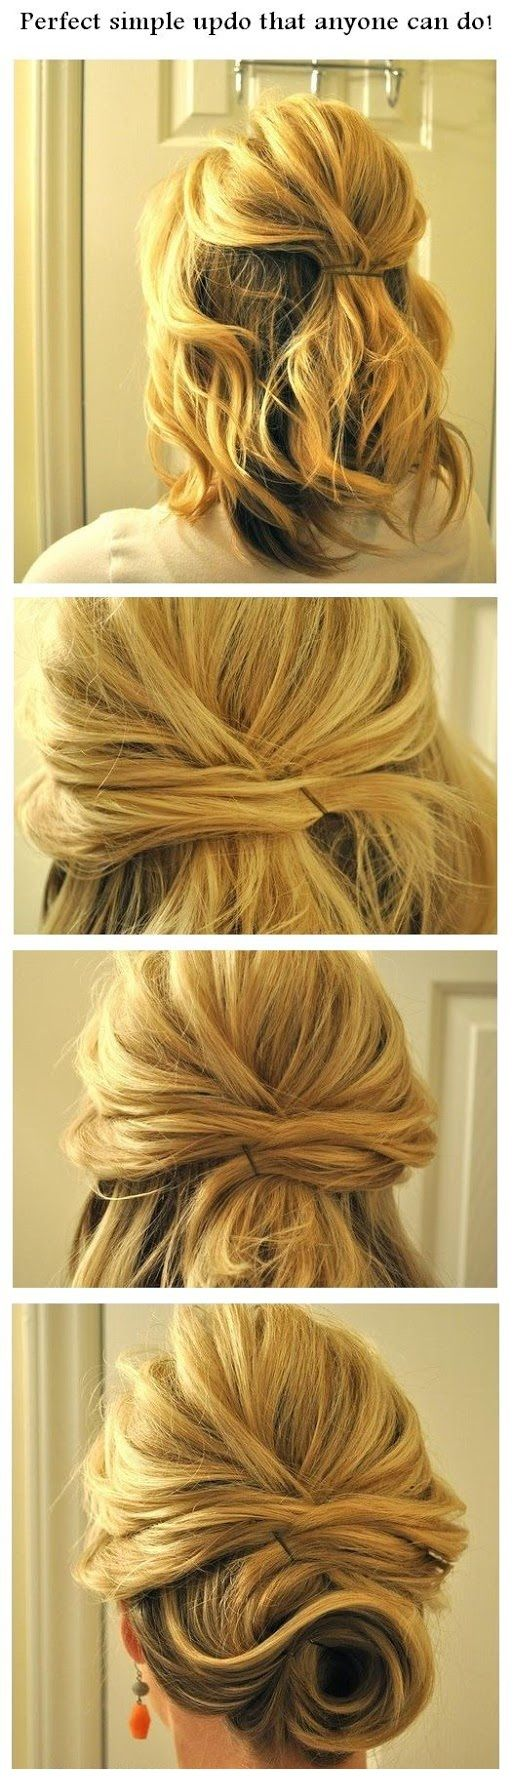 Perfect simple updo that anyone can do!